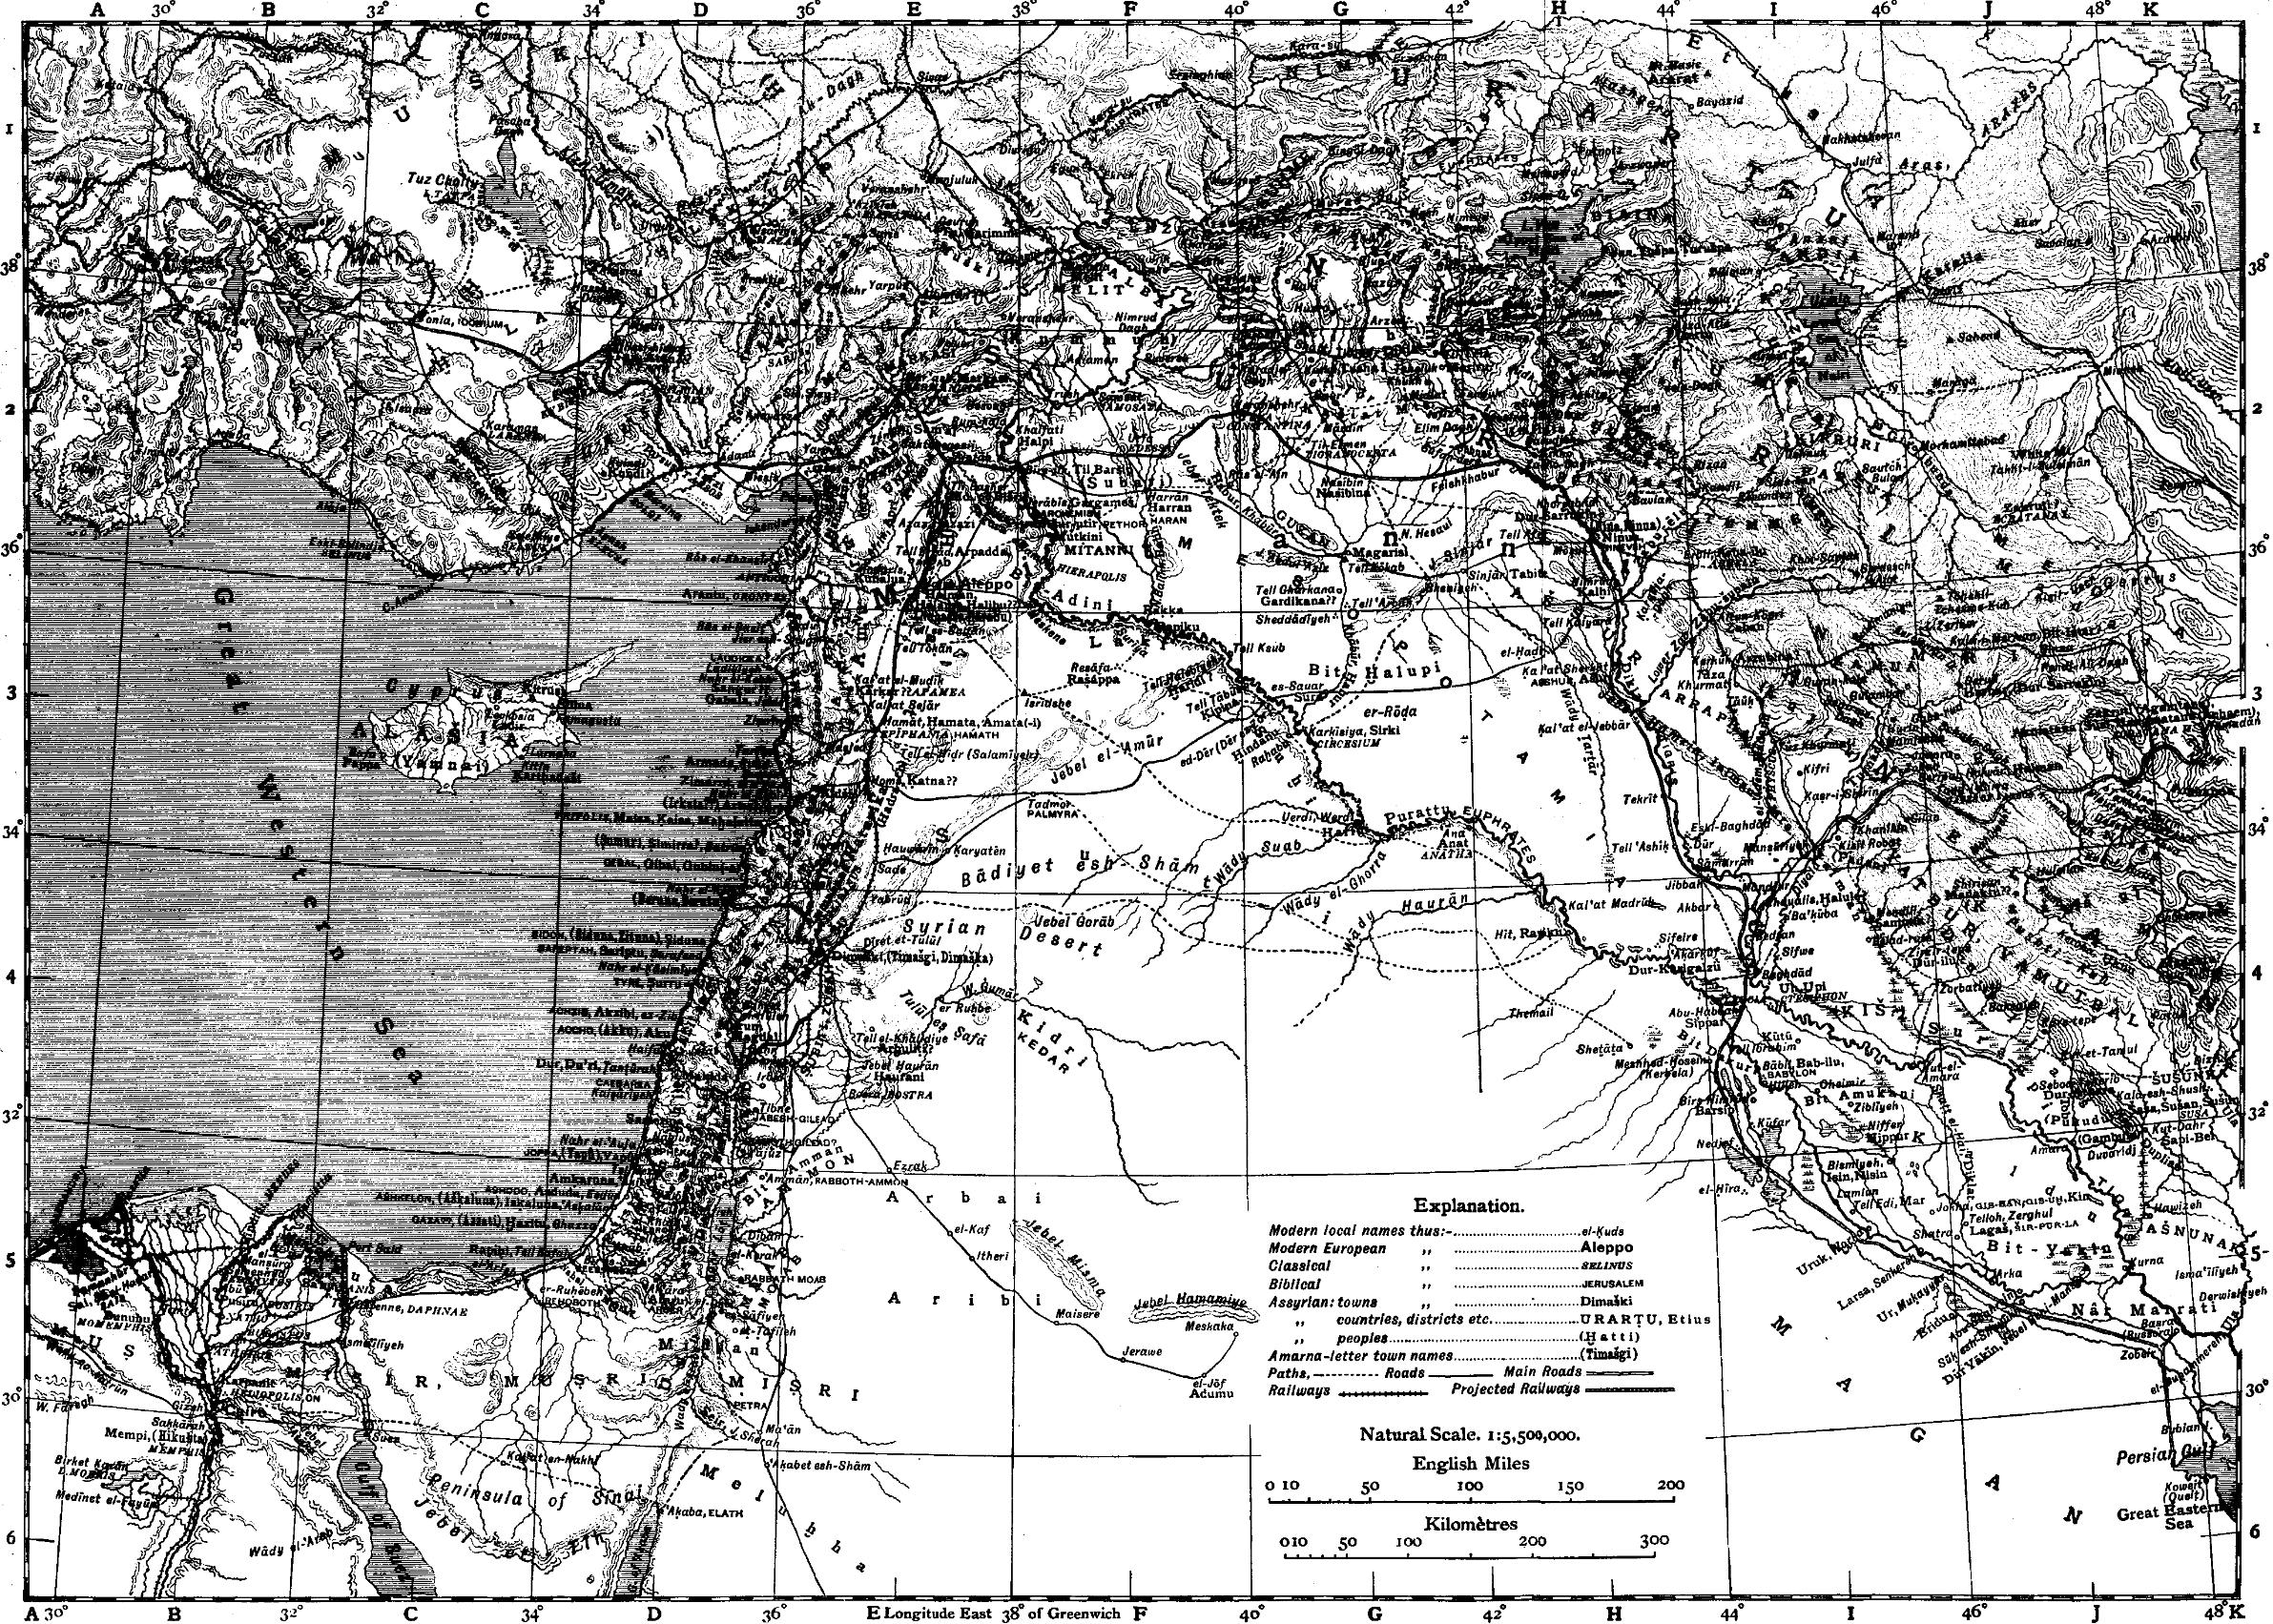 http://commons.wikimedia.org/wiki/File:Encyclopaedia_Biblica_map_of_Syria,_Mesopotamia,_Babylonia,_and_Assyria.jpg